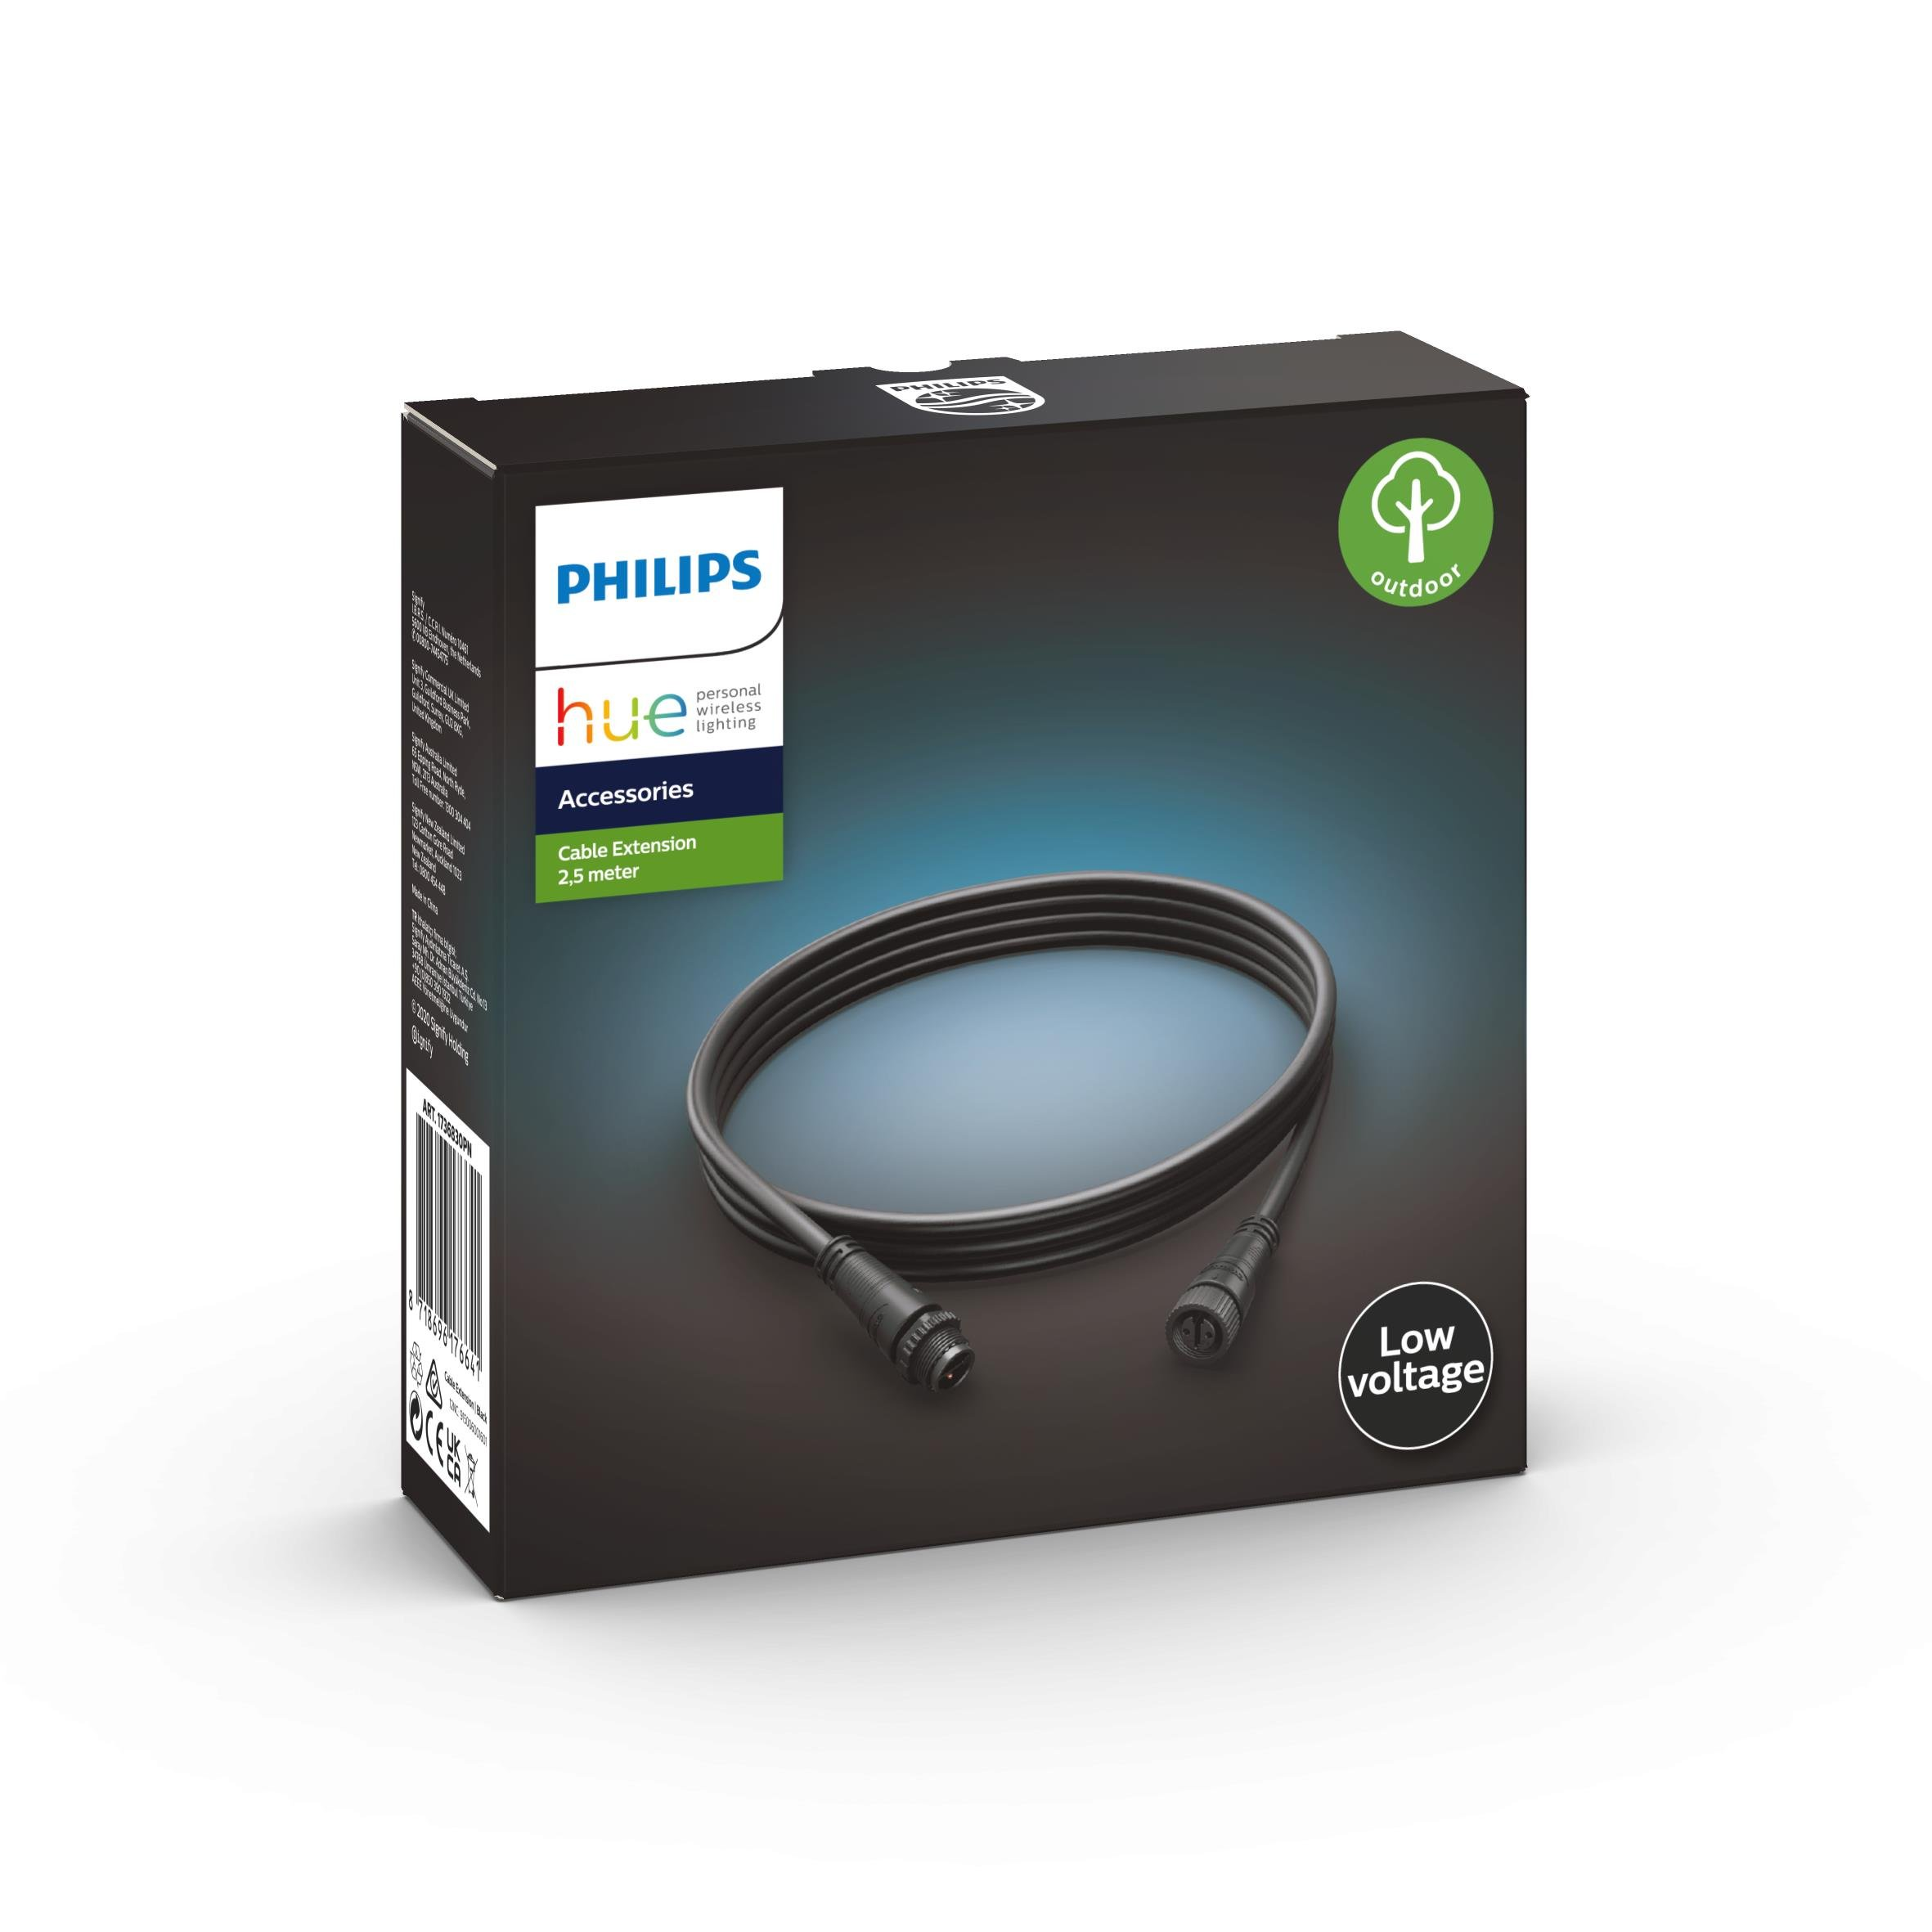 Philips Hue - Outdoor extension Cable 2.5m 24V